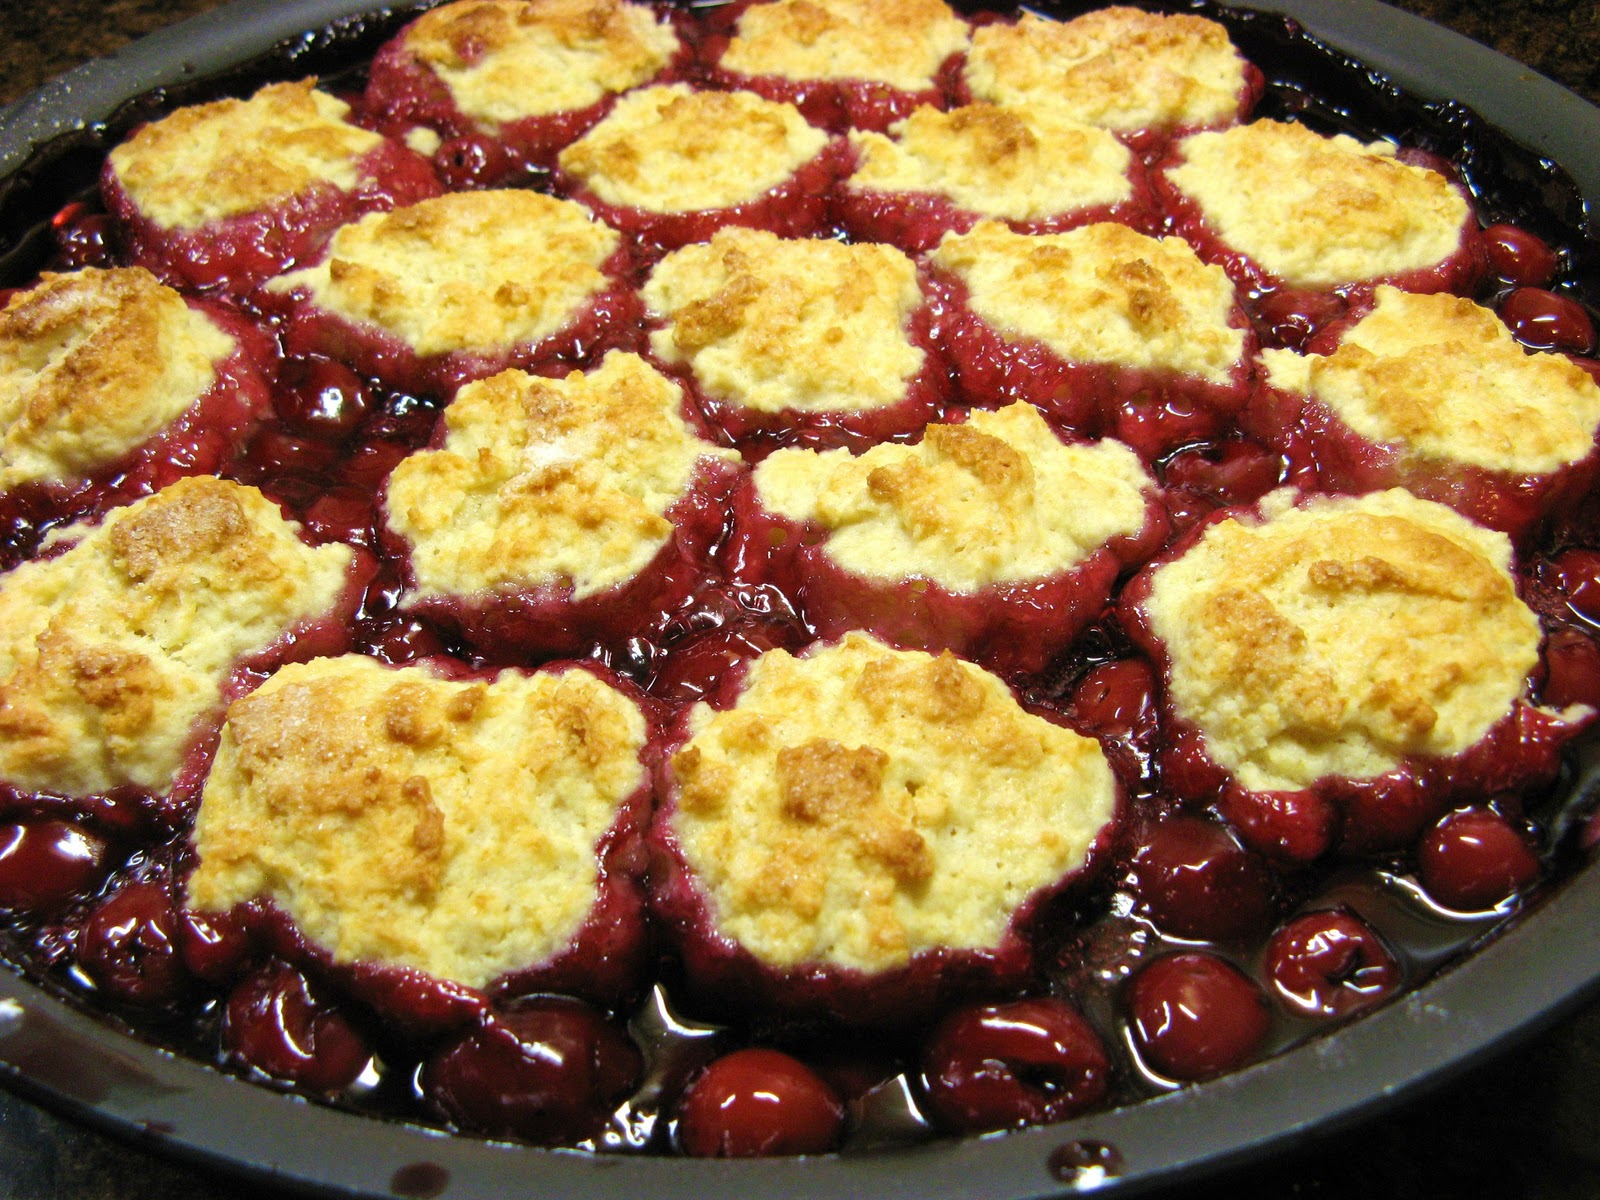 The Well-Fed Newlyweds: Cherry Cobbler